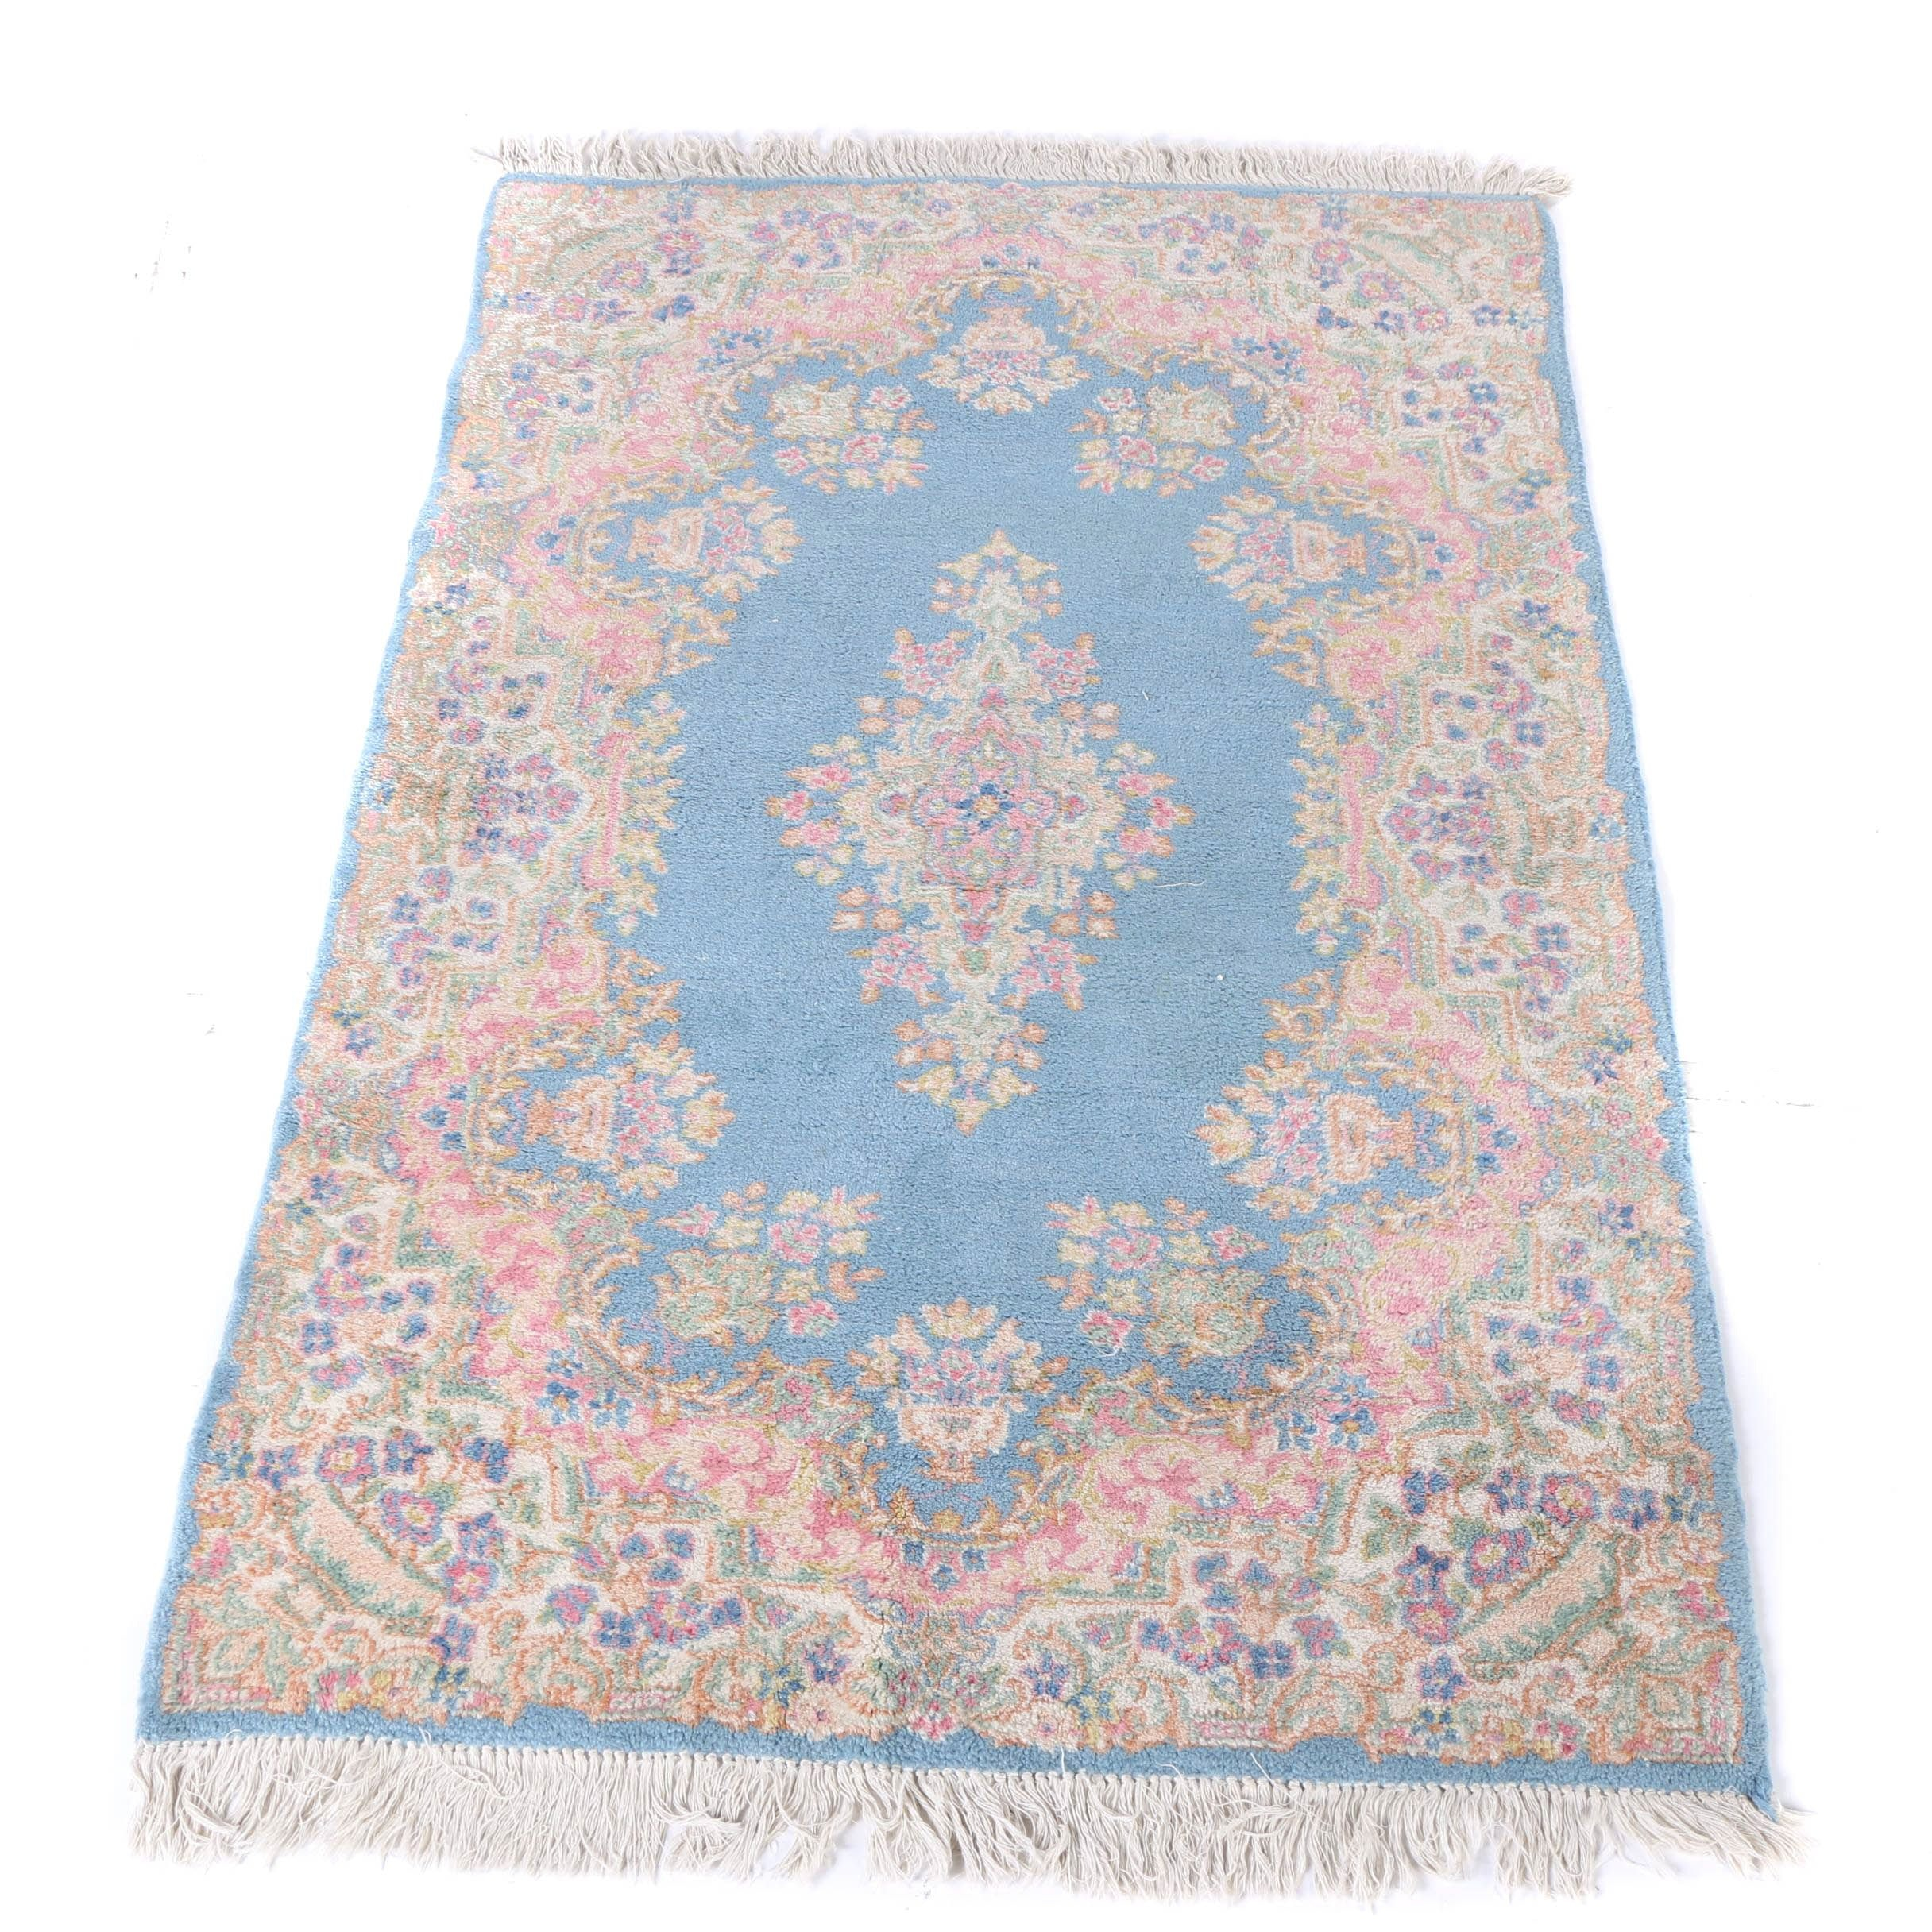 Hand-Knotted Indo-Persian Kerman Area Rug